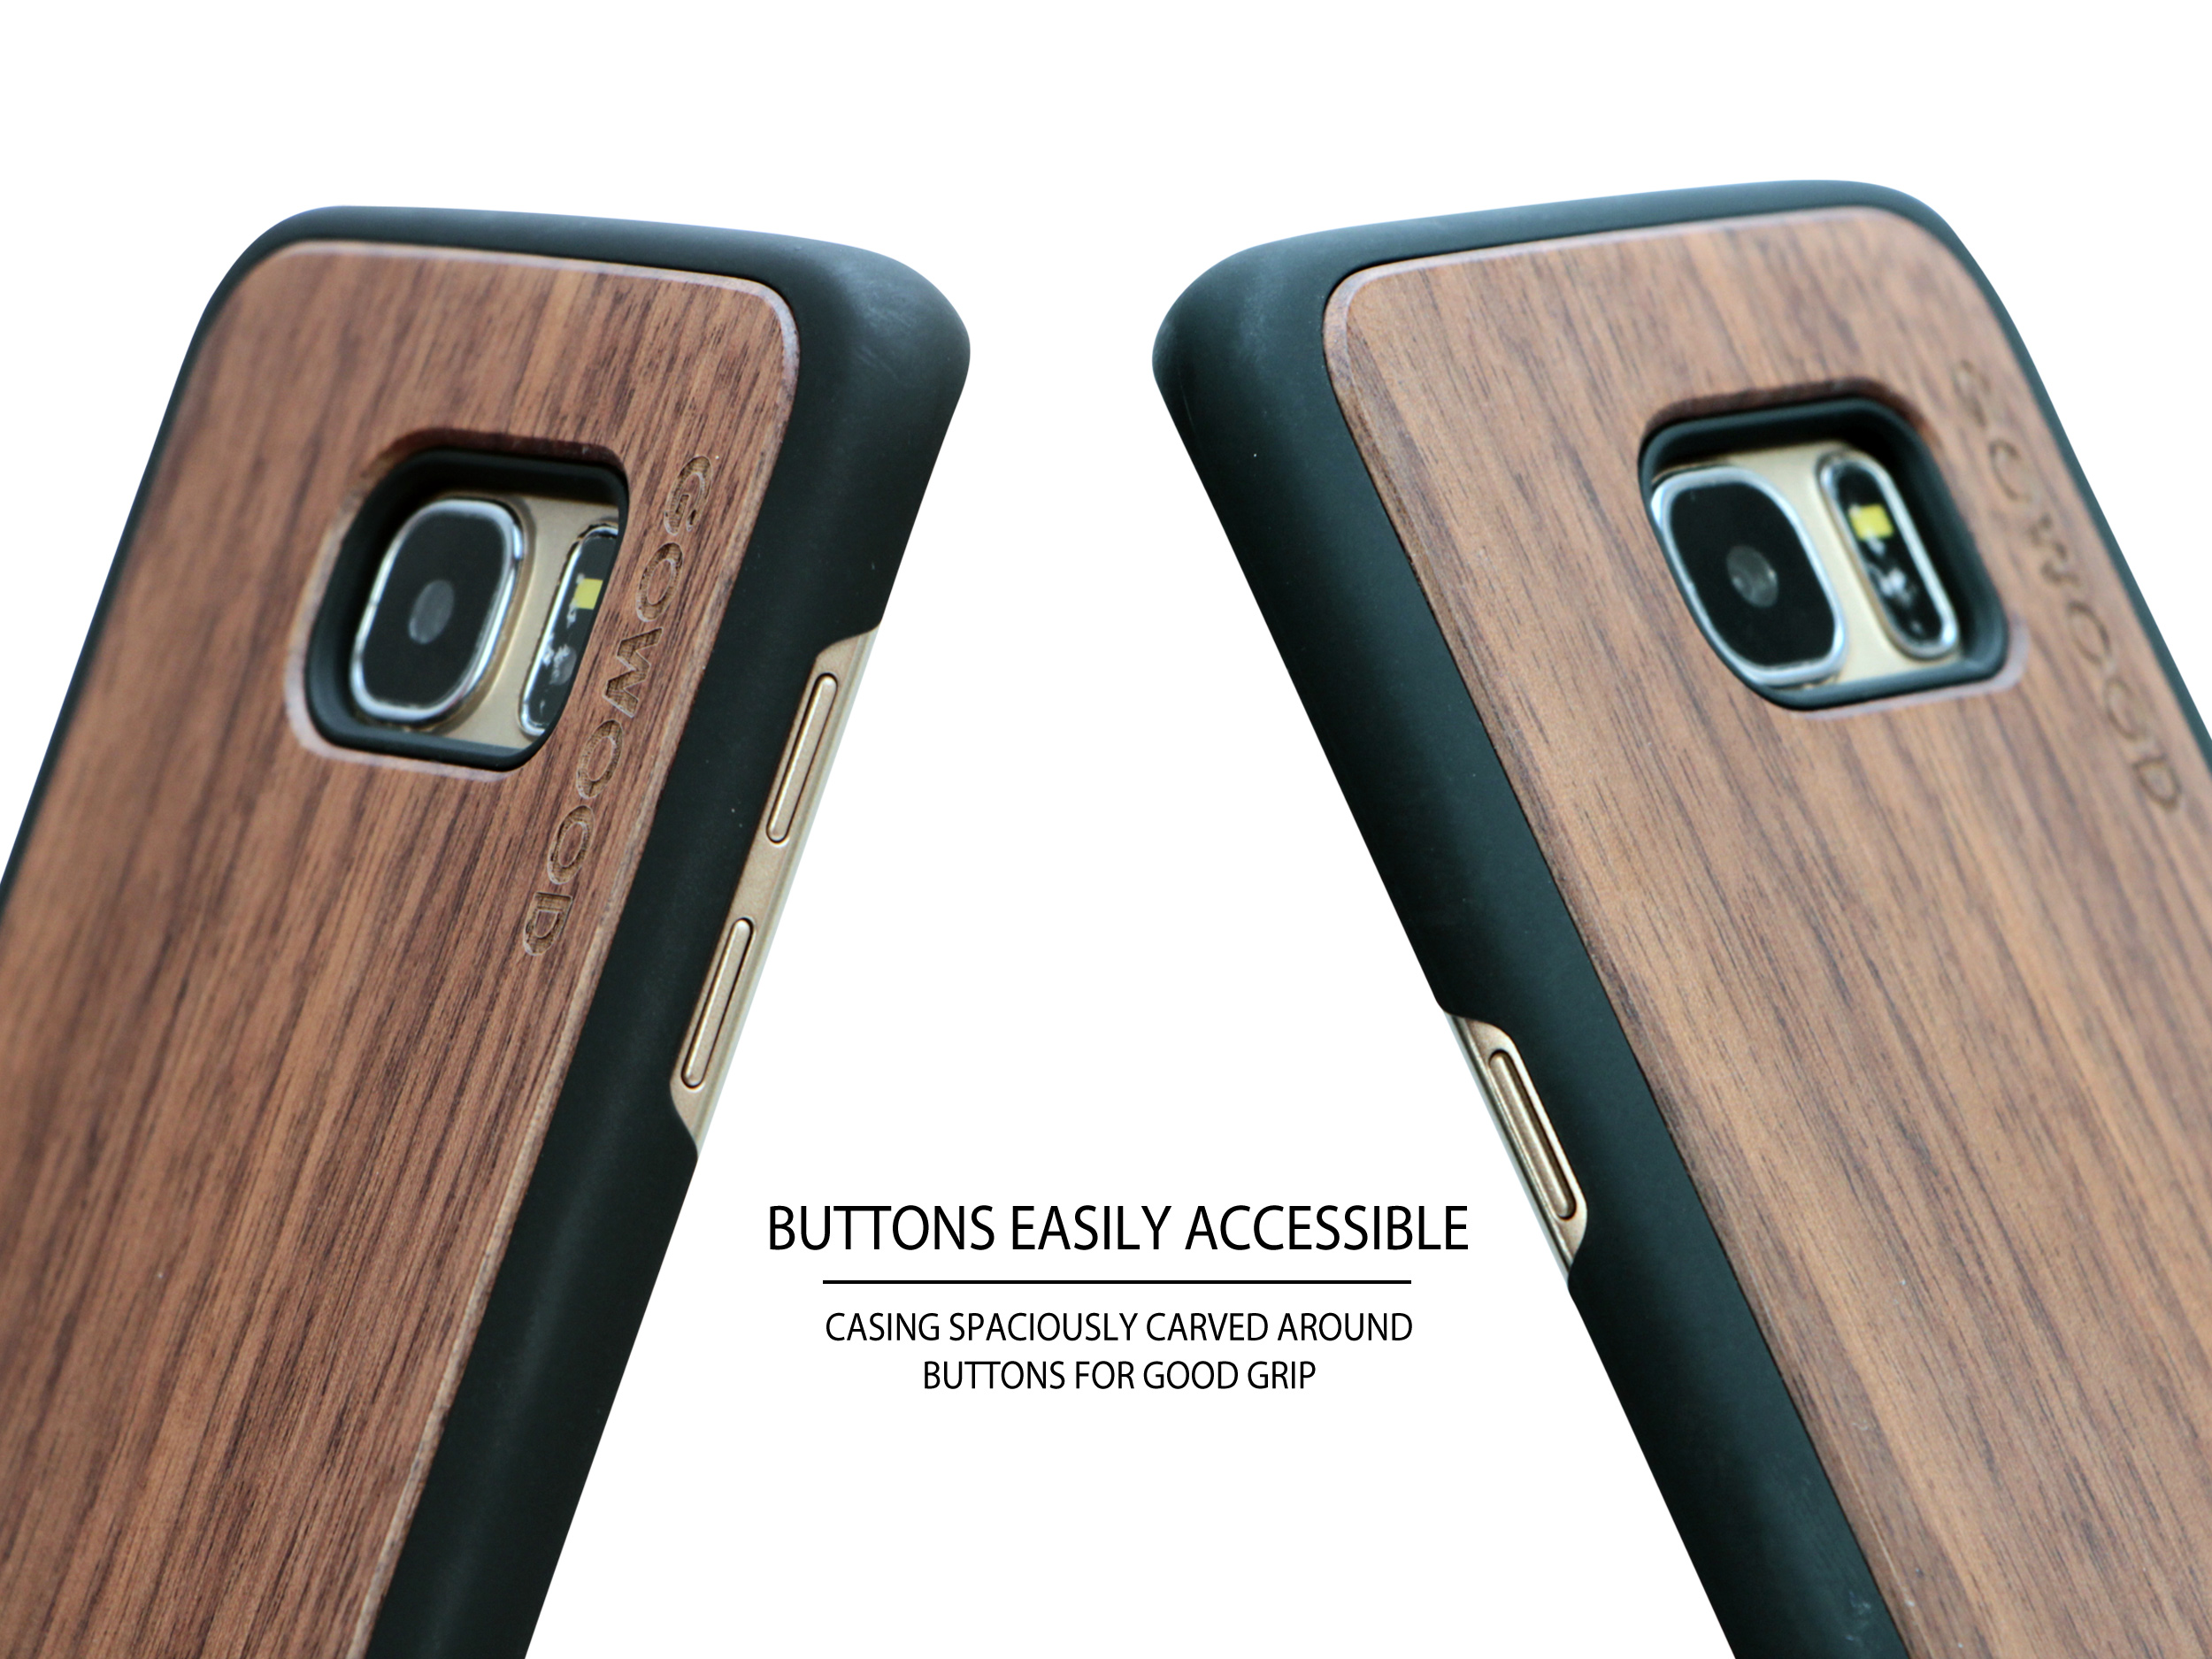 Étui Samsung Galaxy S7 Edge noyer buttons